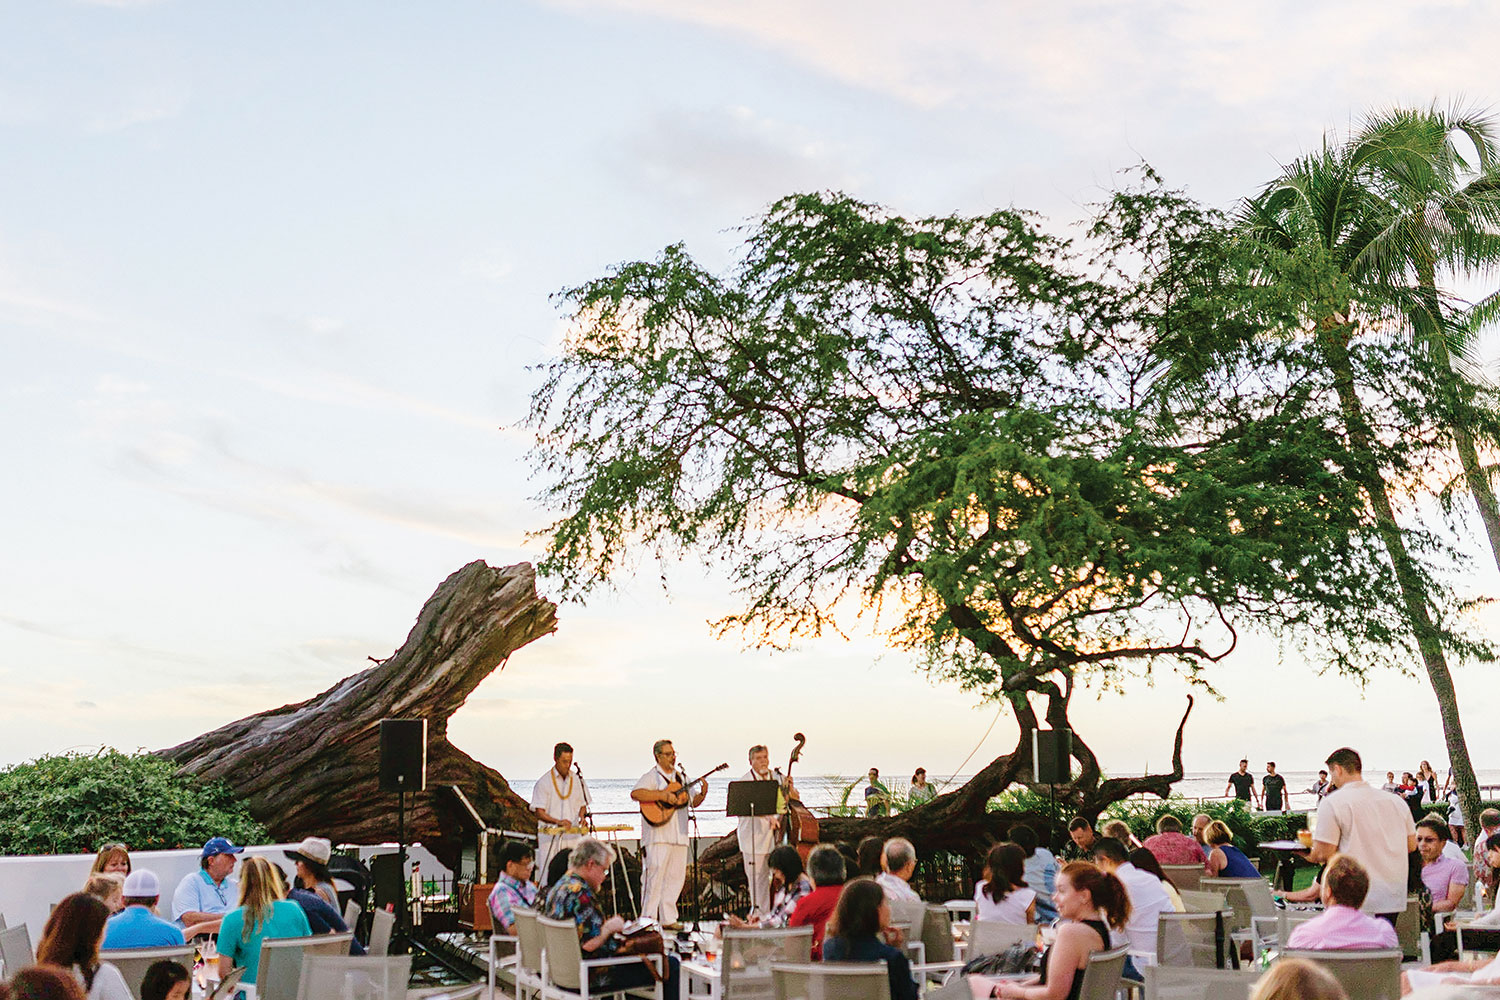 4 members of a band dressed in white stand in front of a tree and ocean playing for an audience